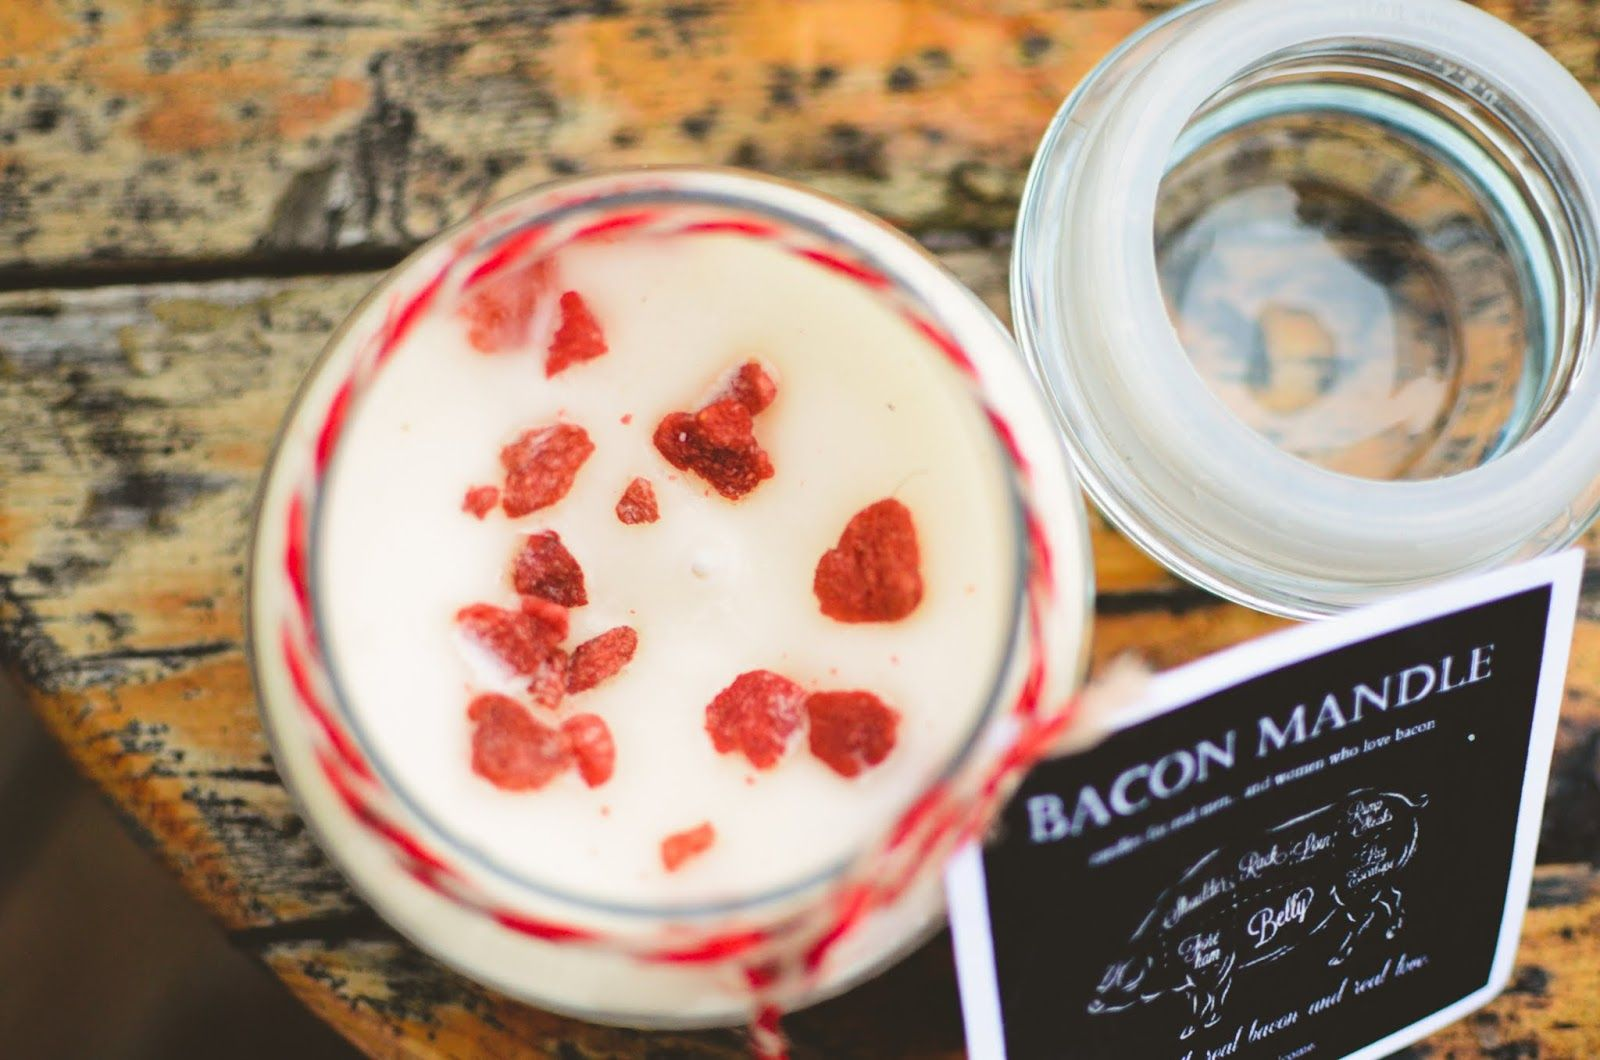 How to make a homemade bacon candle. Lol @k . Capps @Olivia García McIntosh @Maria Henderson W